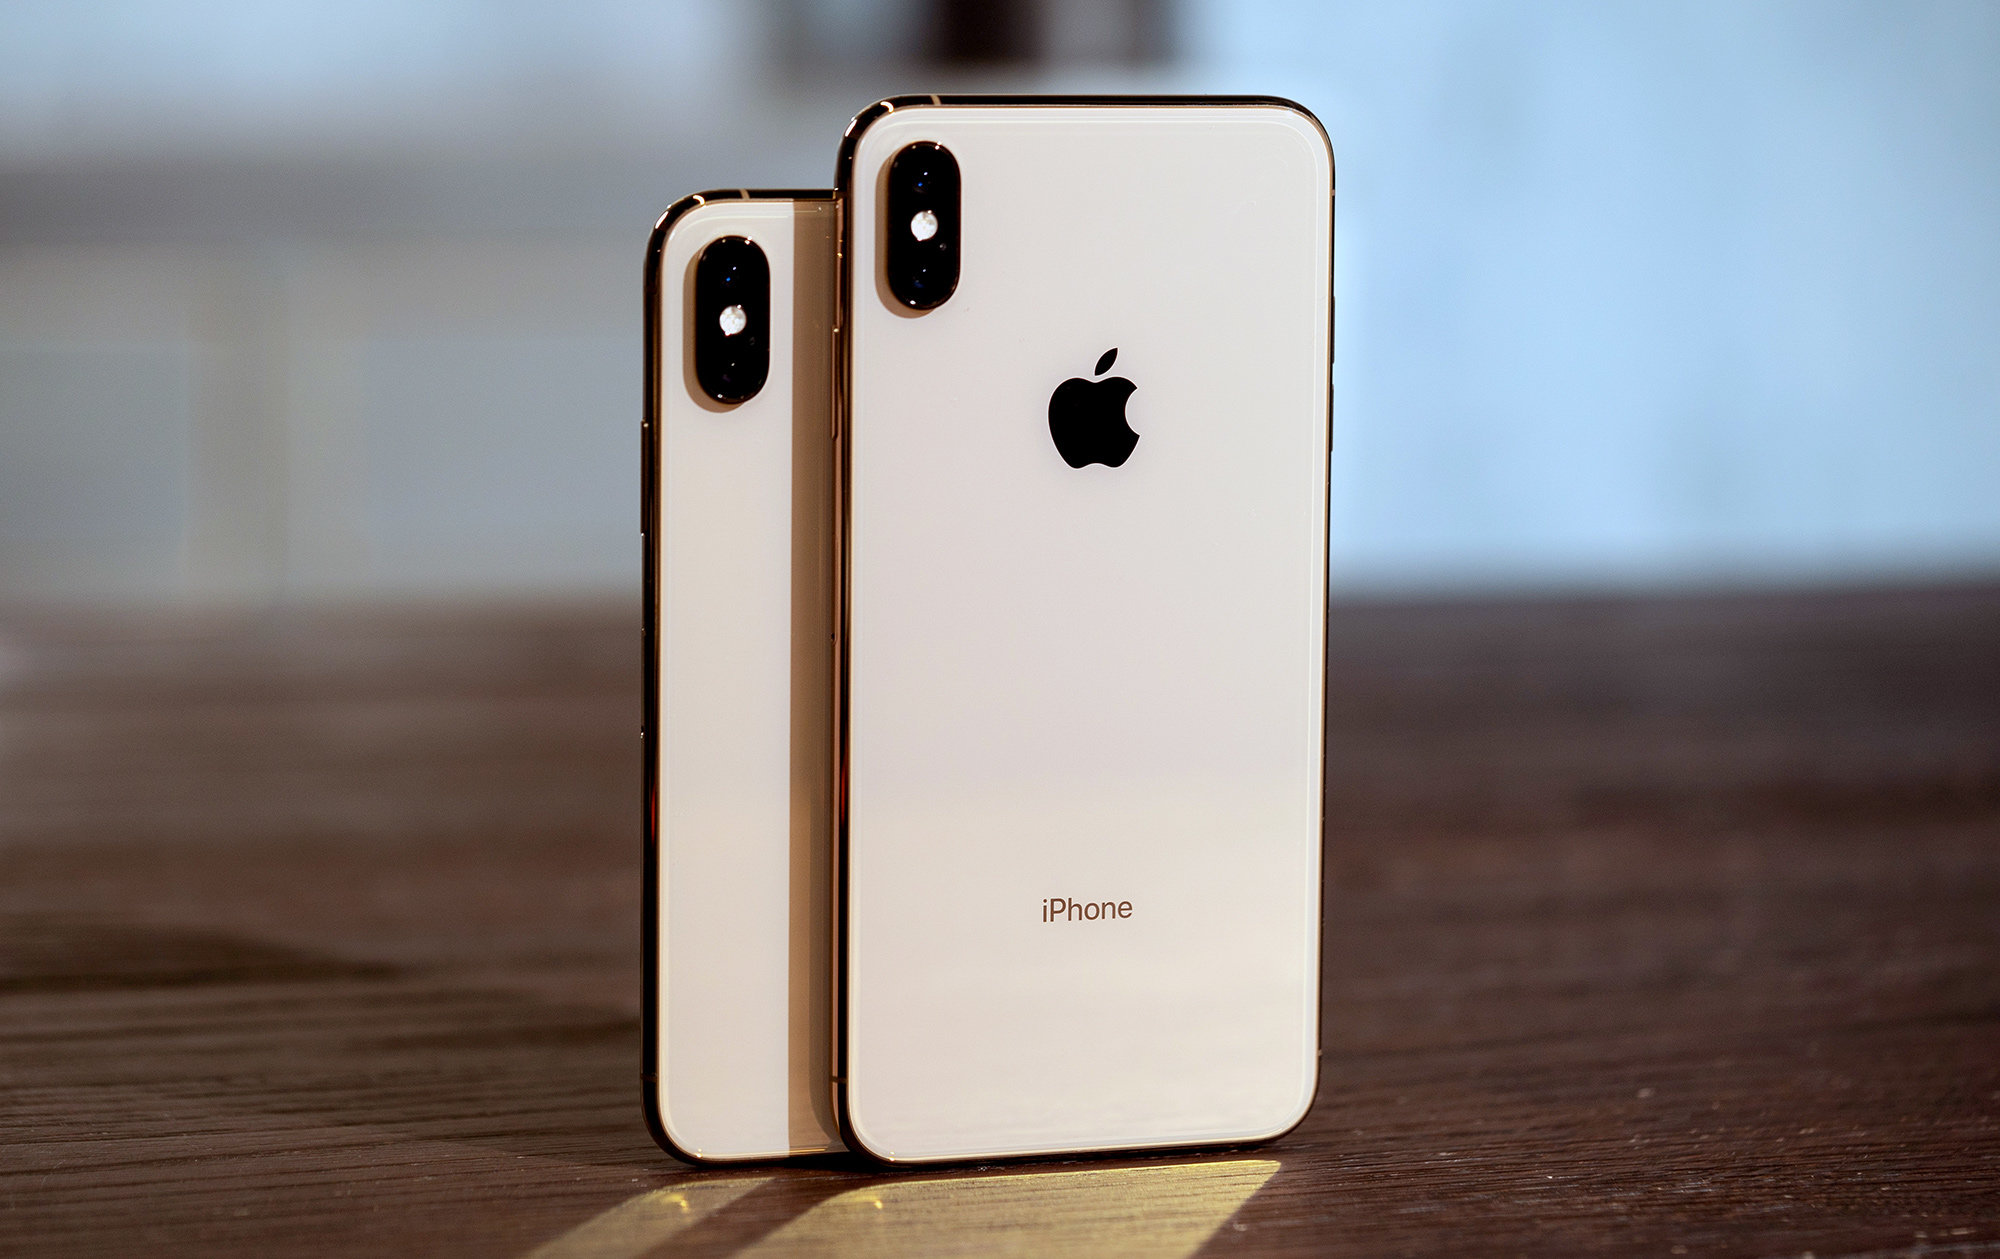 Apple iPhone sales in China plunged 20% in 4Q